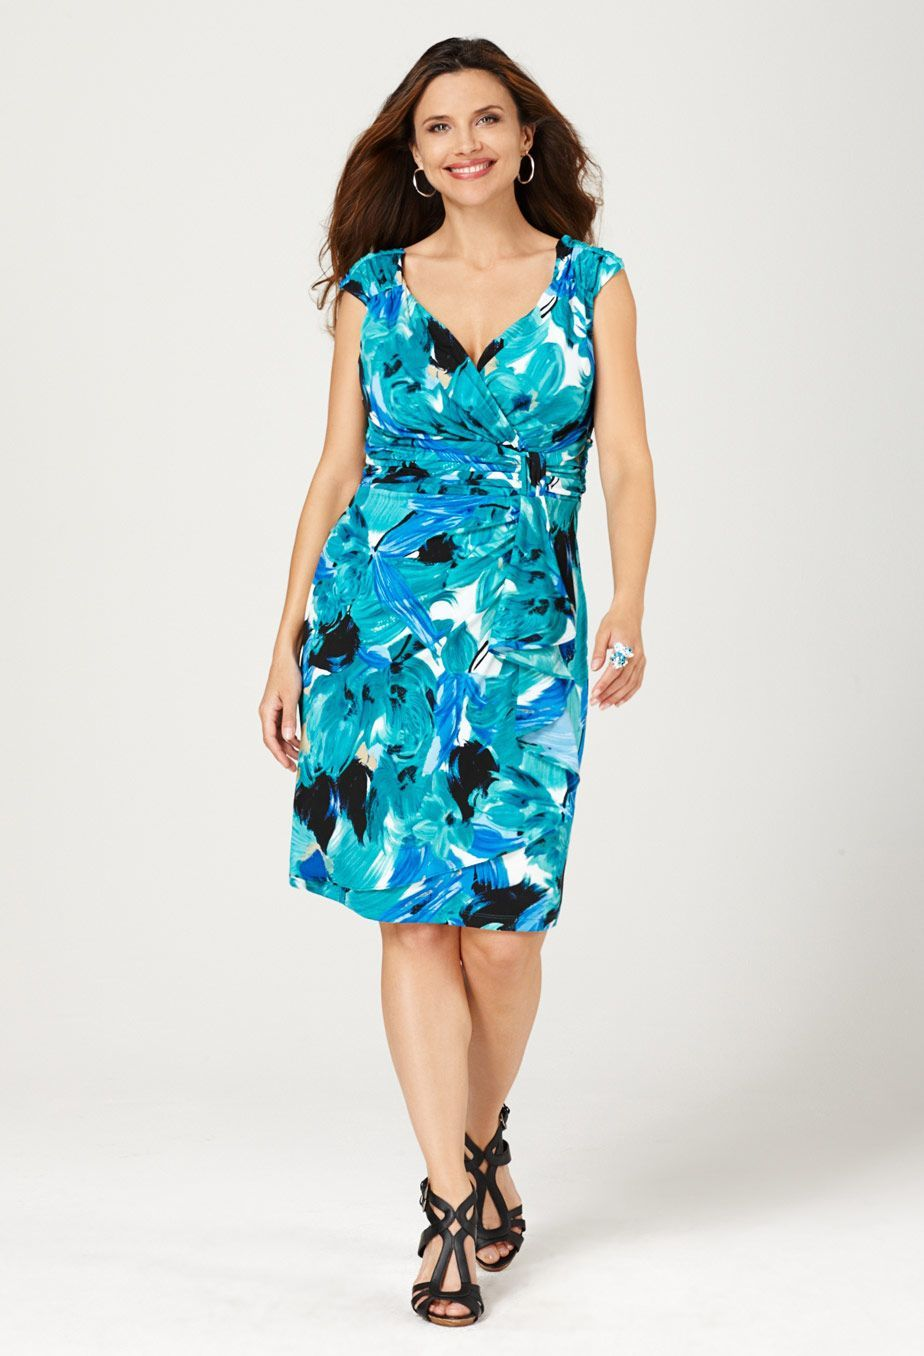 25 Plus Size Womens Clothing For Summer Summer Dresses Summer And